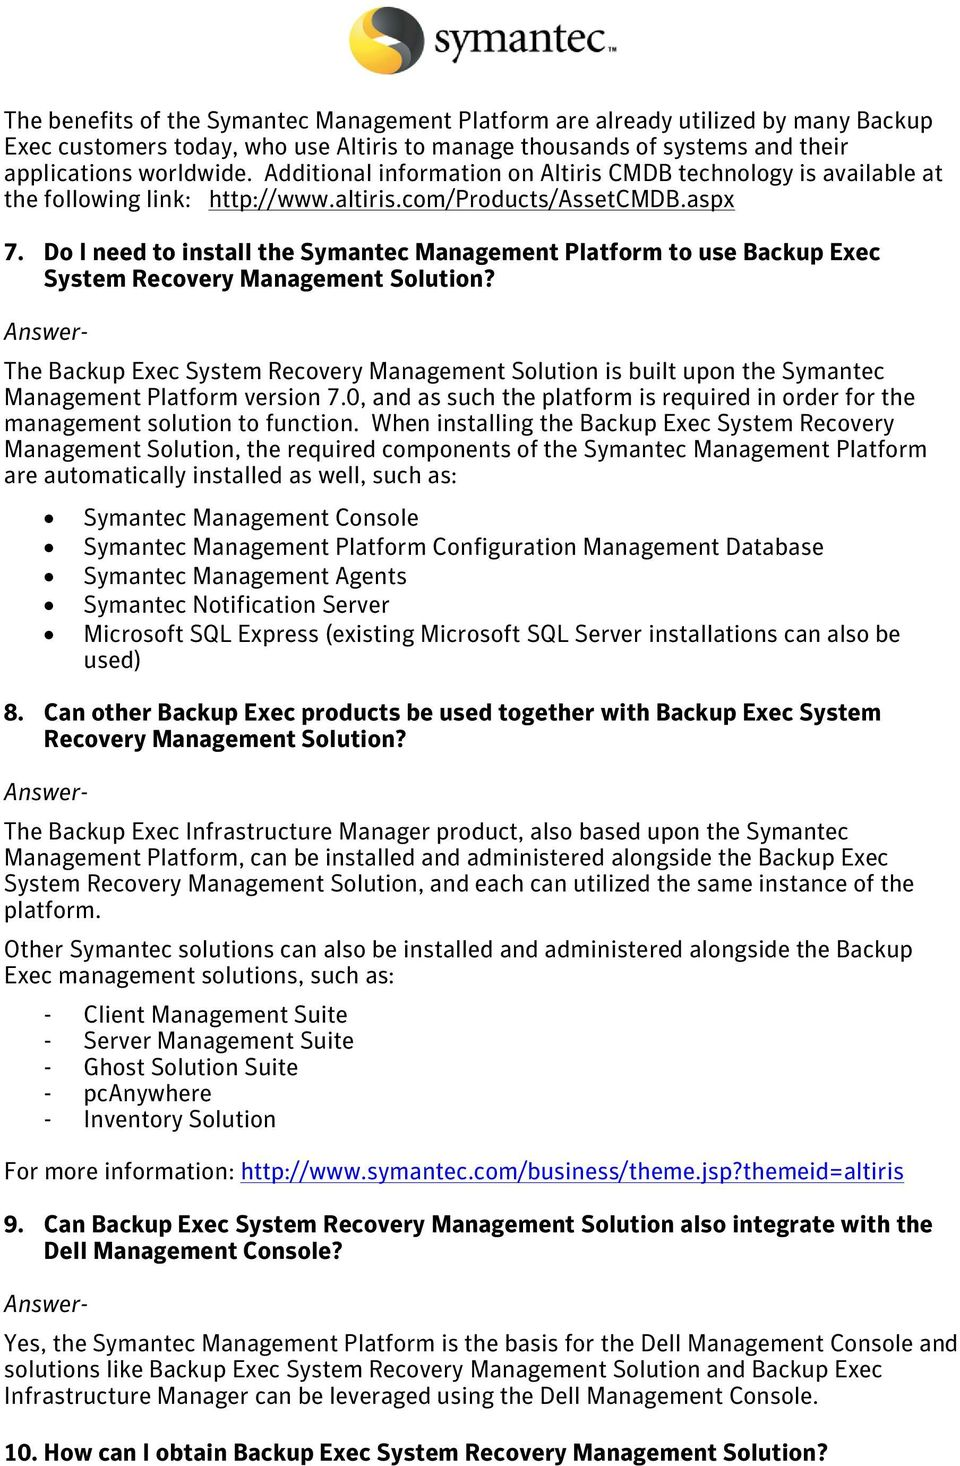 Do I need to install the Symantec Management Platform to use Backup Exec System Recovery Management Solution?